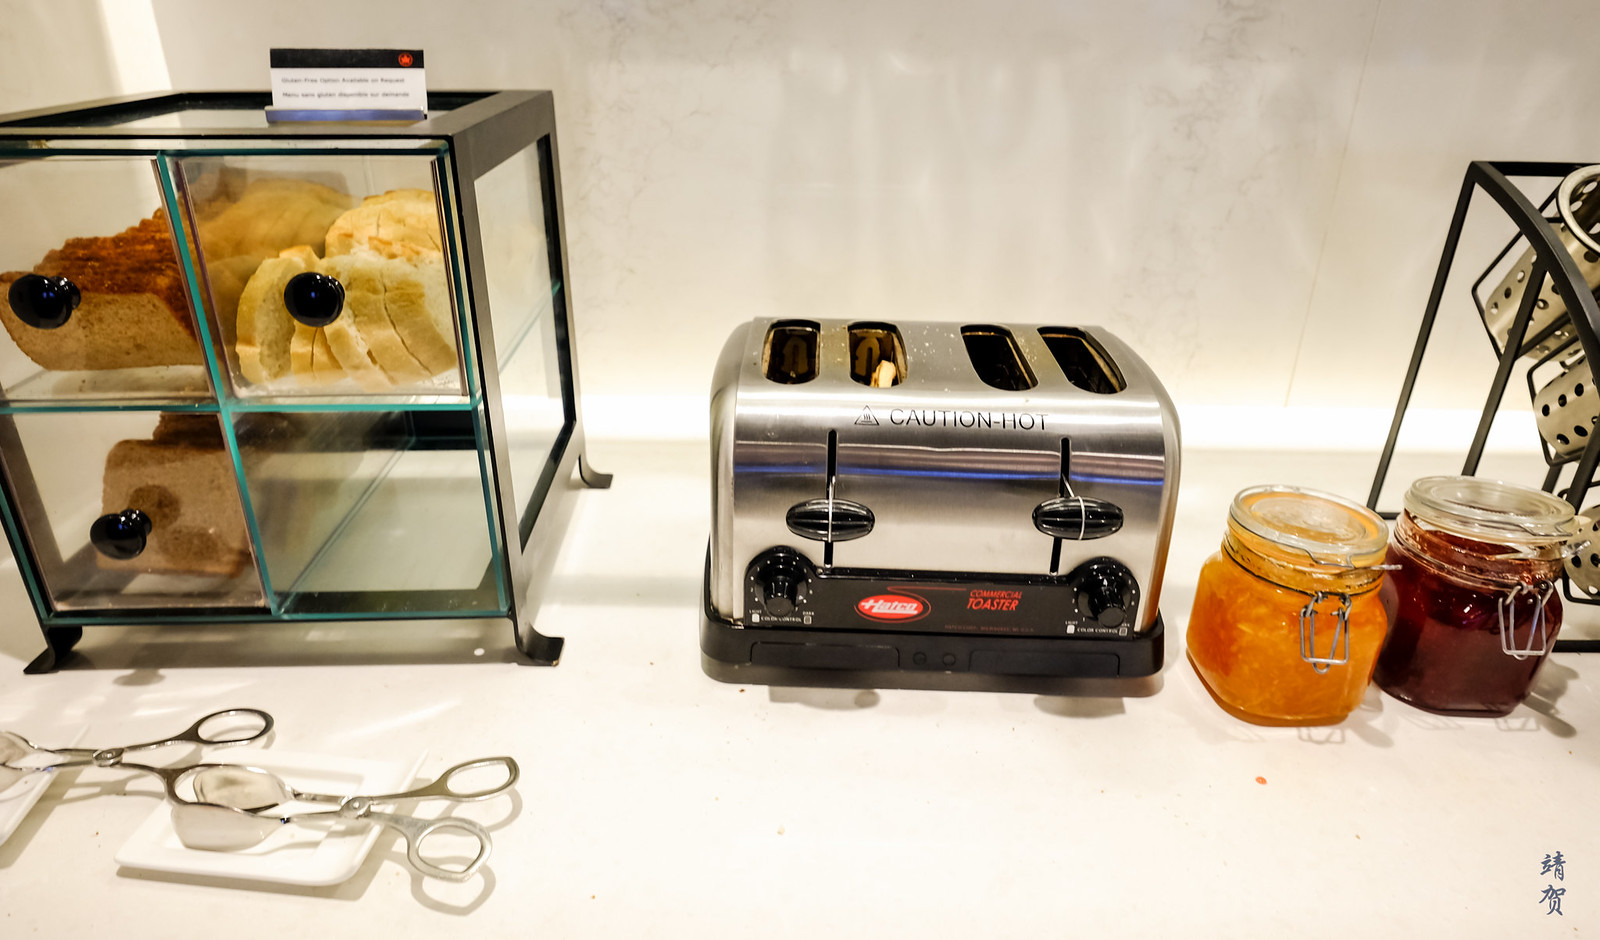 Bread and toaster